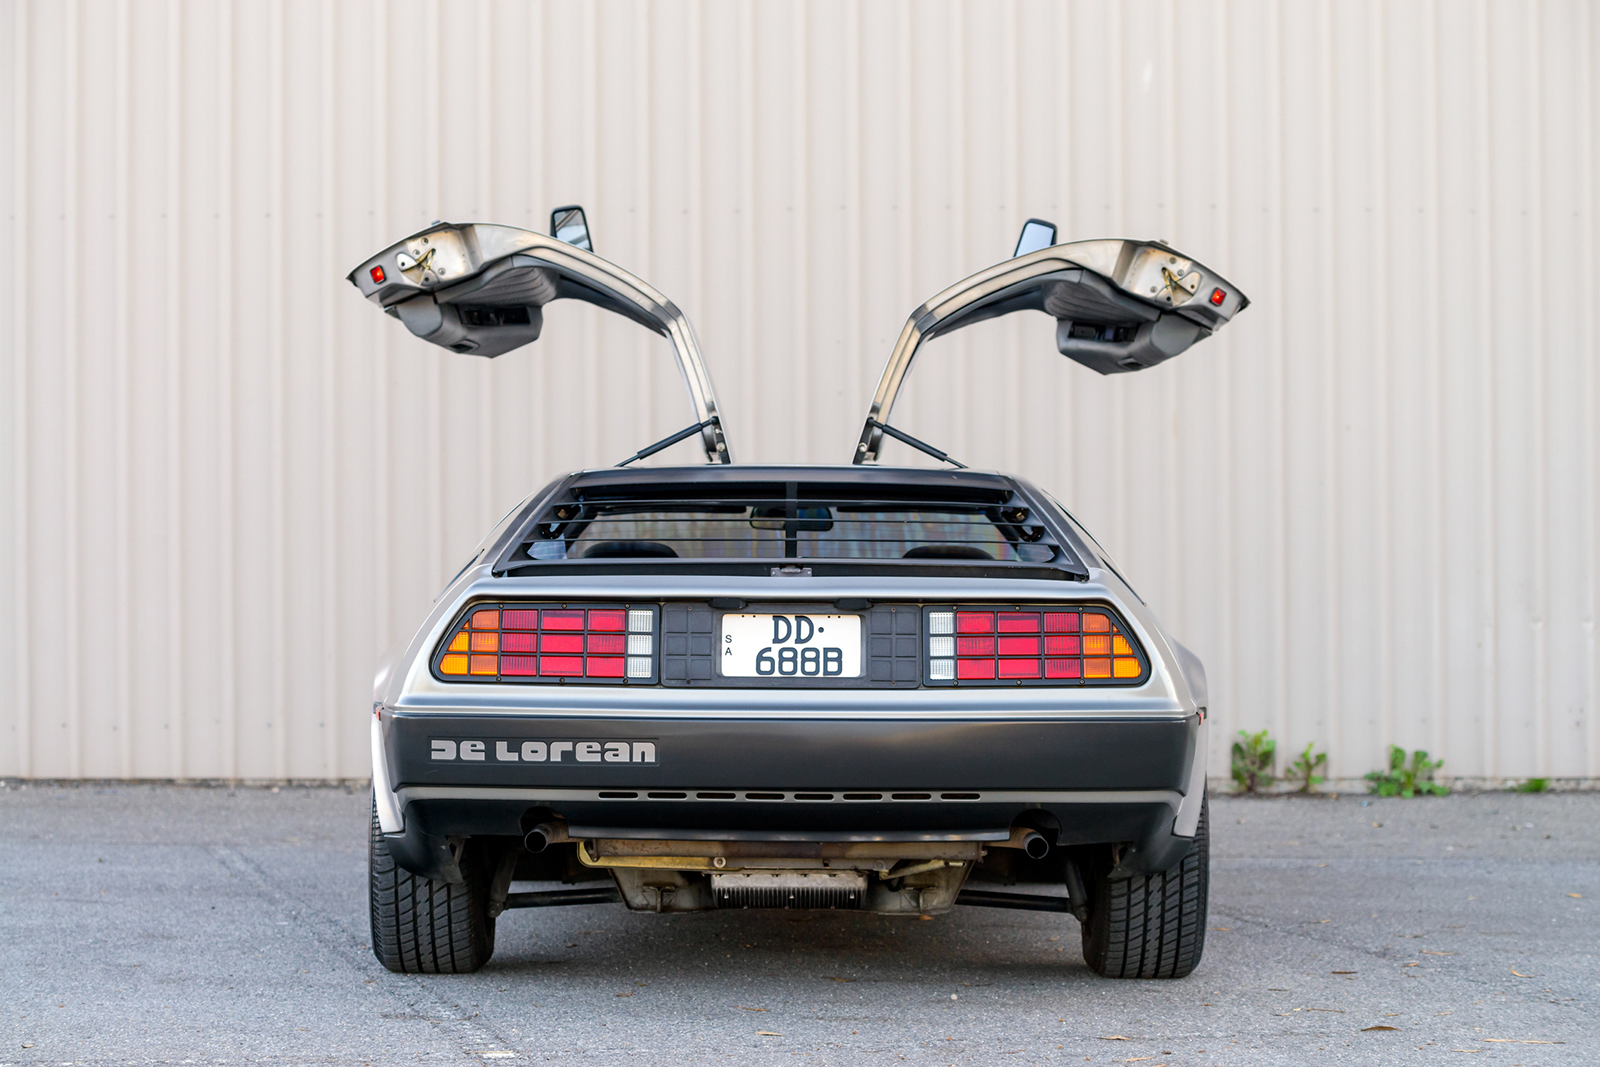 Rear of a Delorean car with its gull wing doors open